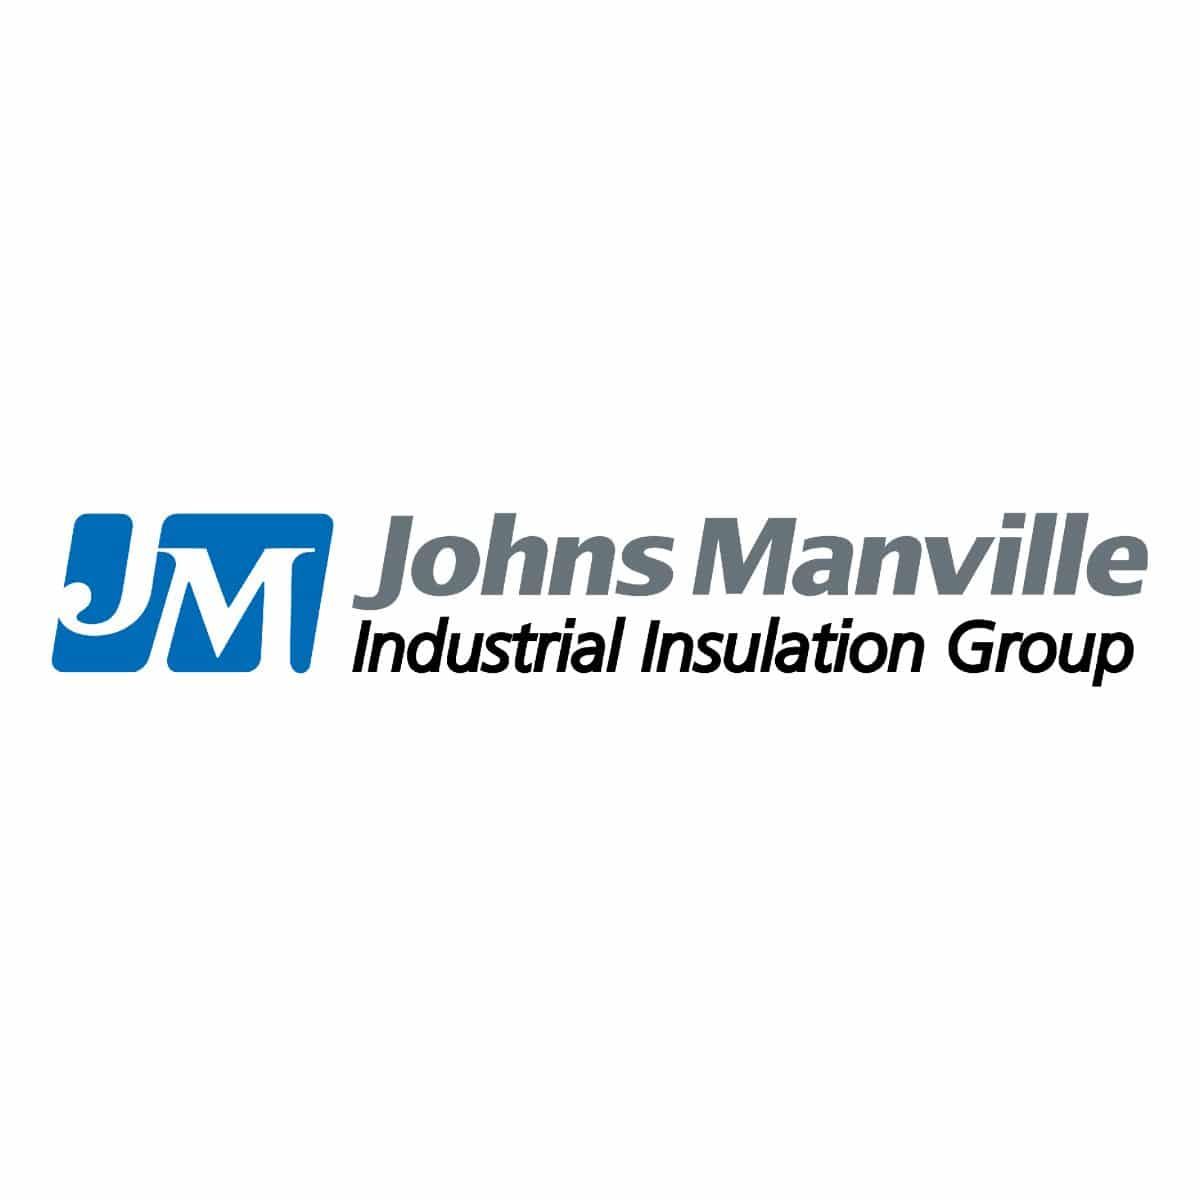 Johns Manville Industrial Group